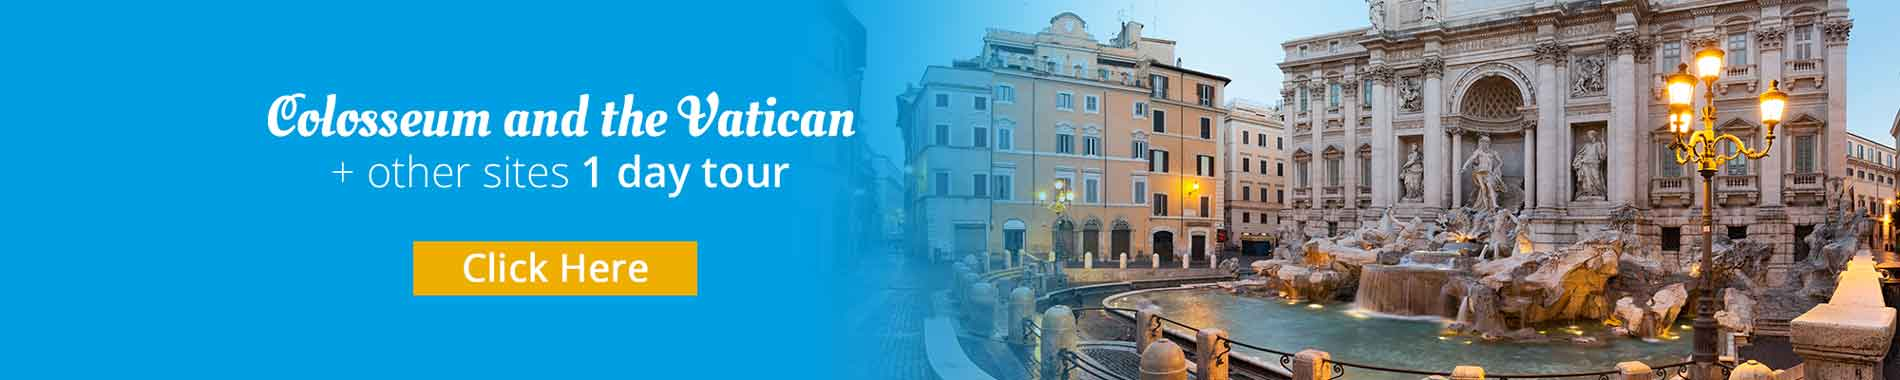 Rome Tour with guide